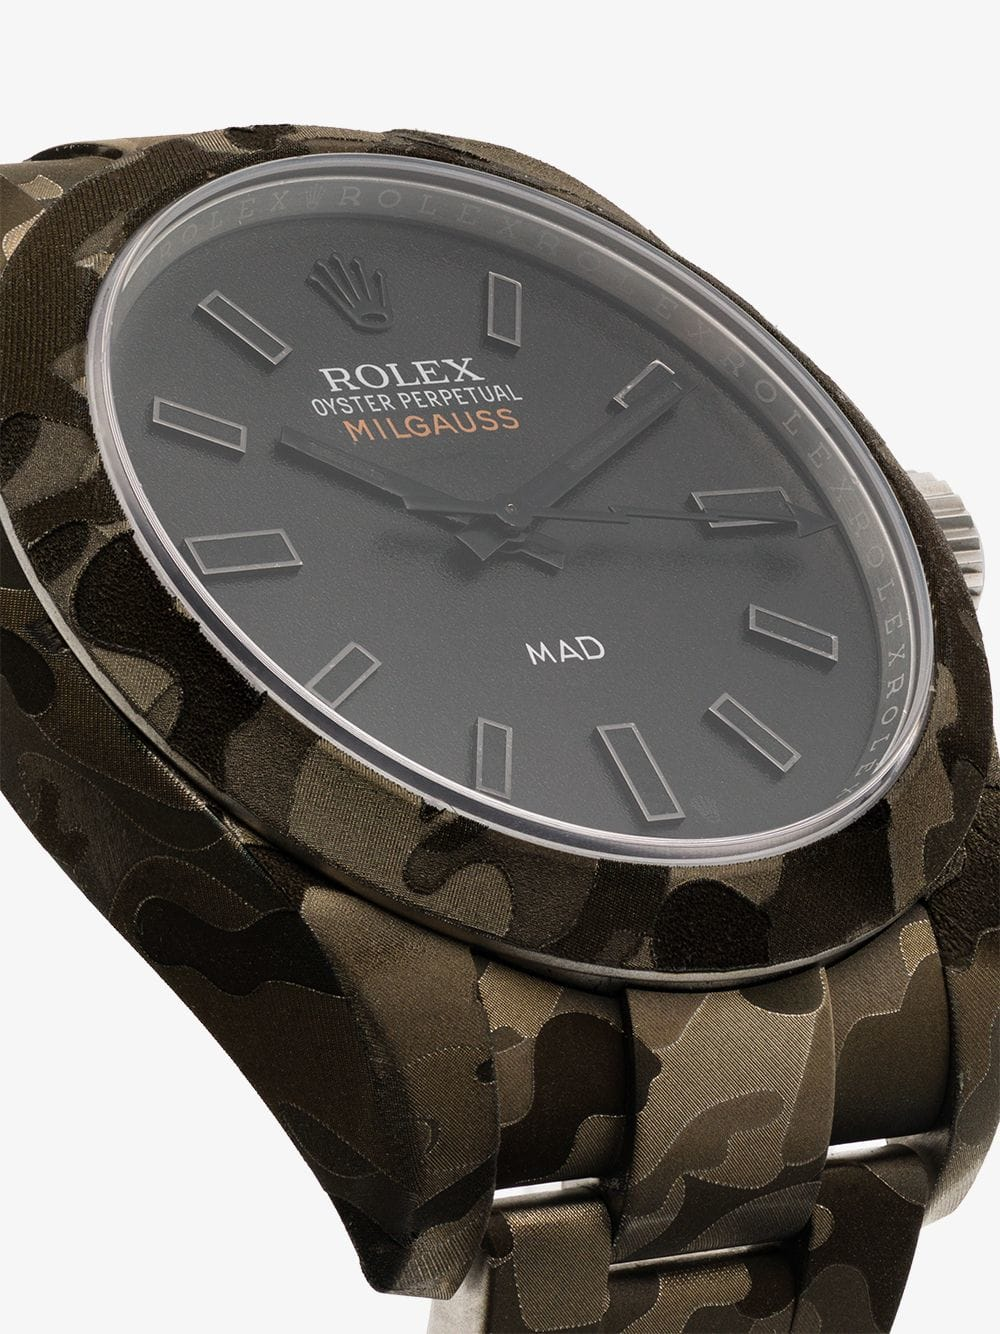 MAD PARIS Rolex Milgauss Camouflage Watch